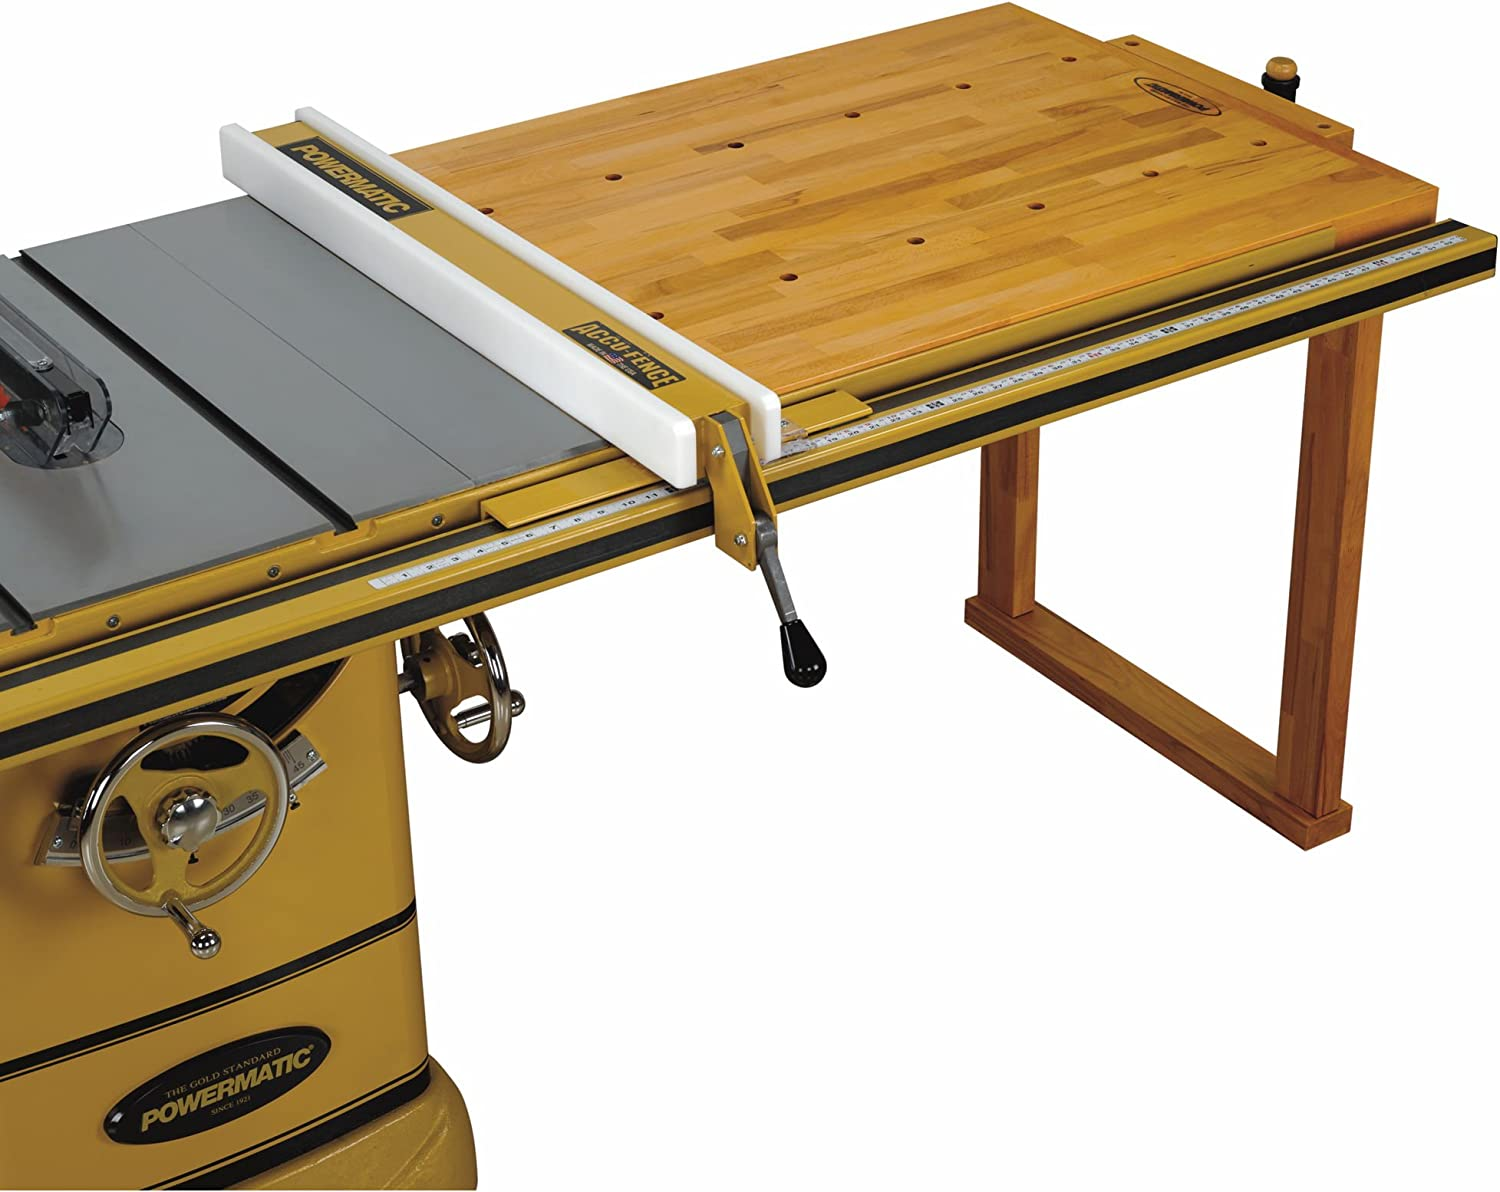 Powermatic PM2 Table Saws product image 3